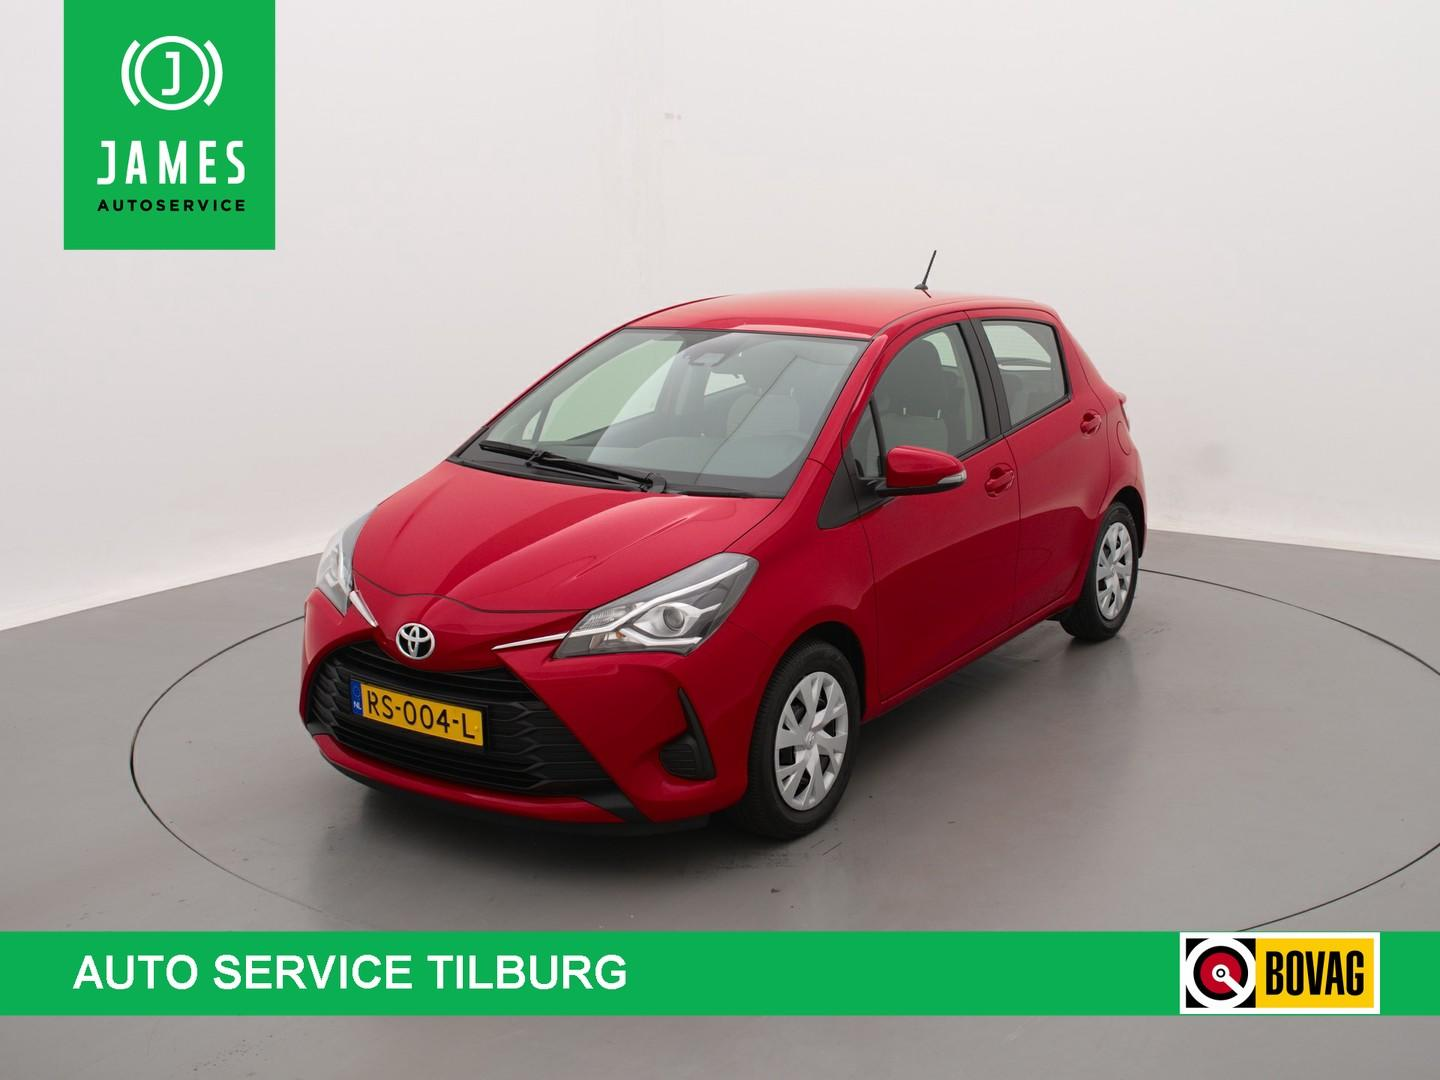 Toyota Yaris 1.0 vvt-i aspiration 5-drs navi camera cruise